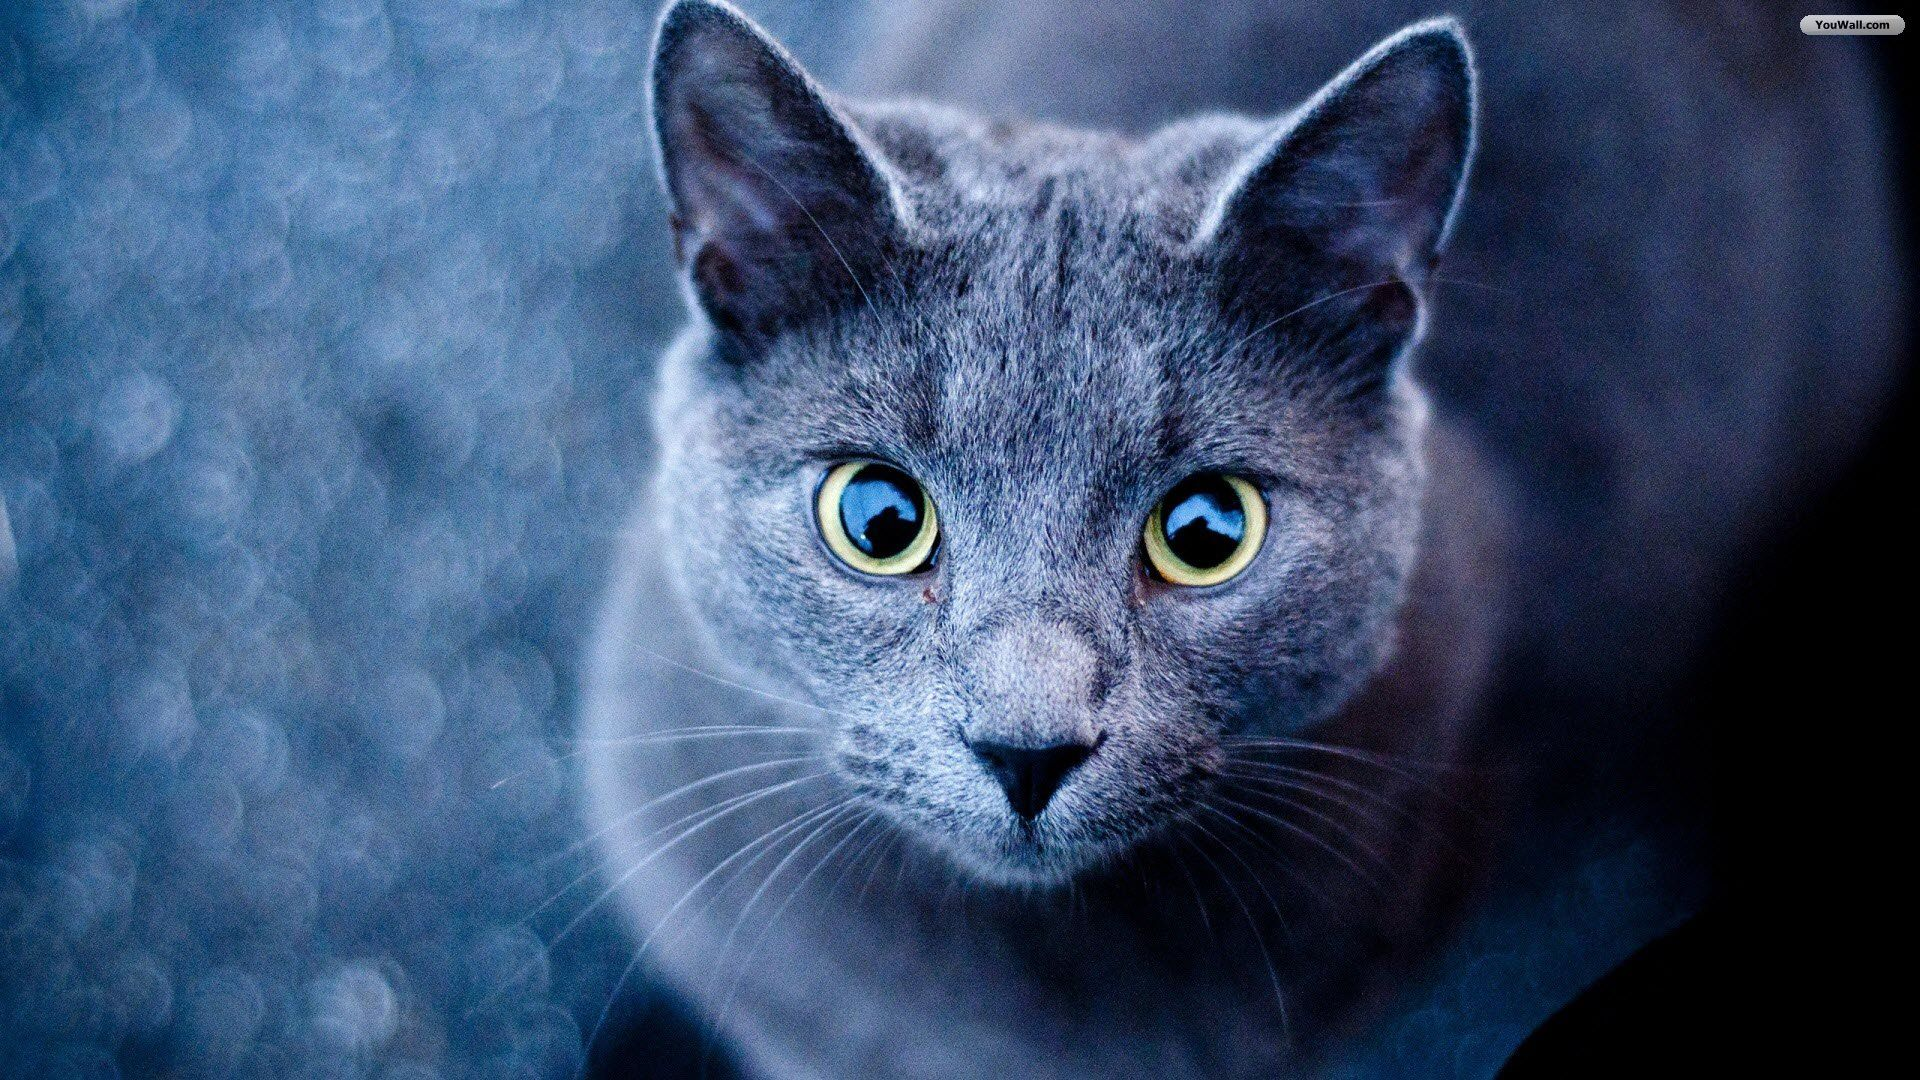 Cute Cats Wallpapers Wallpaper 1280×1024 Cats Images